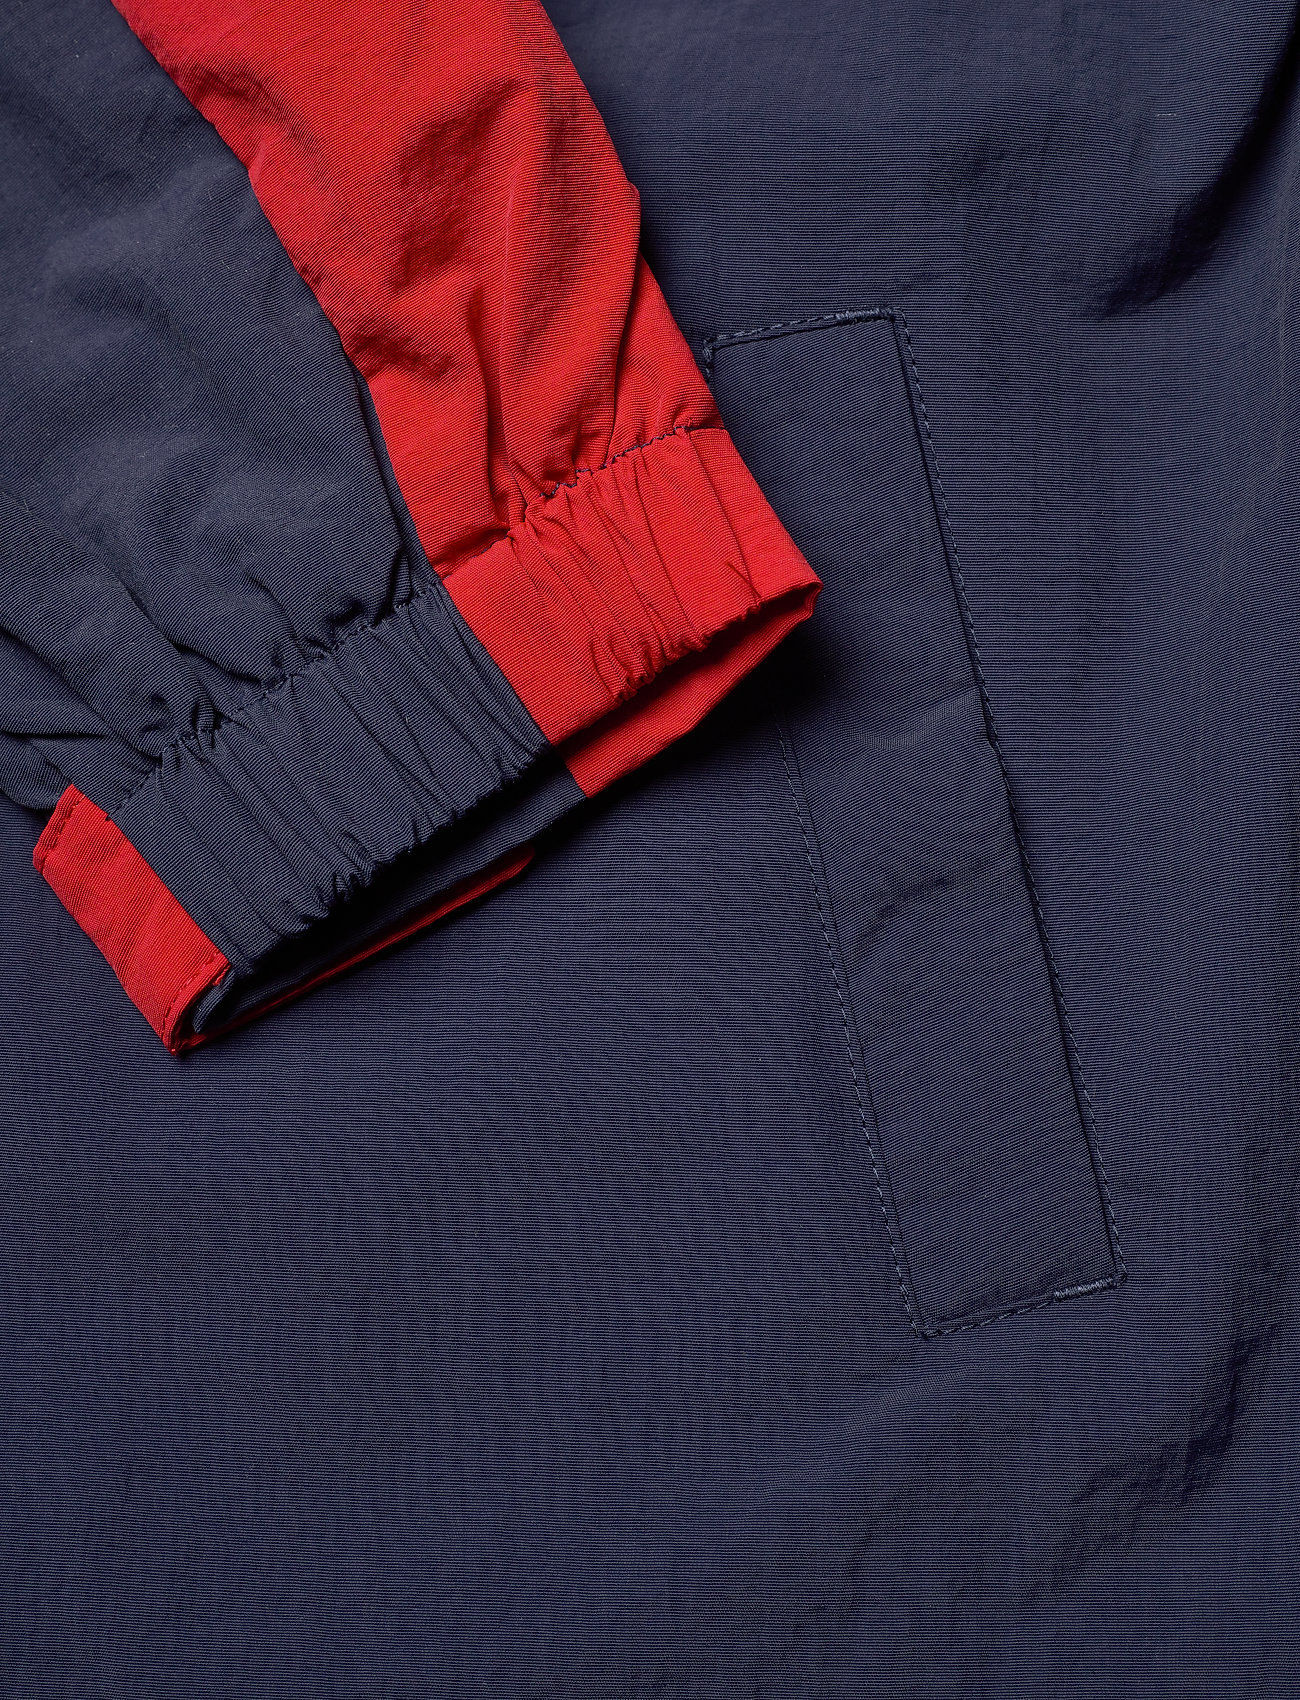 Tommy Hilfiger Colorblock Popover - Jackor Twilight Navy / Deep Crimson